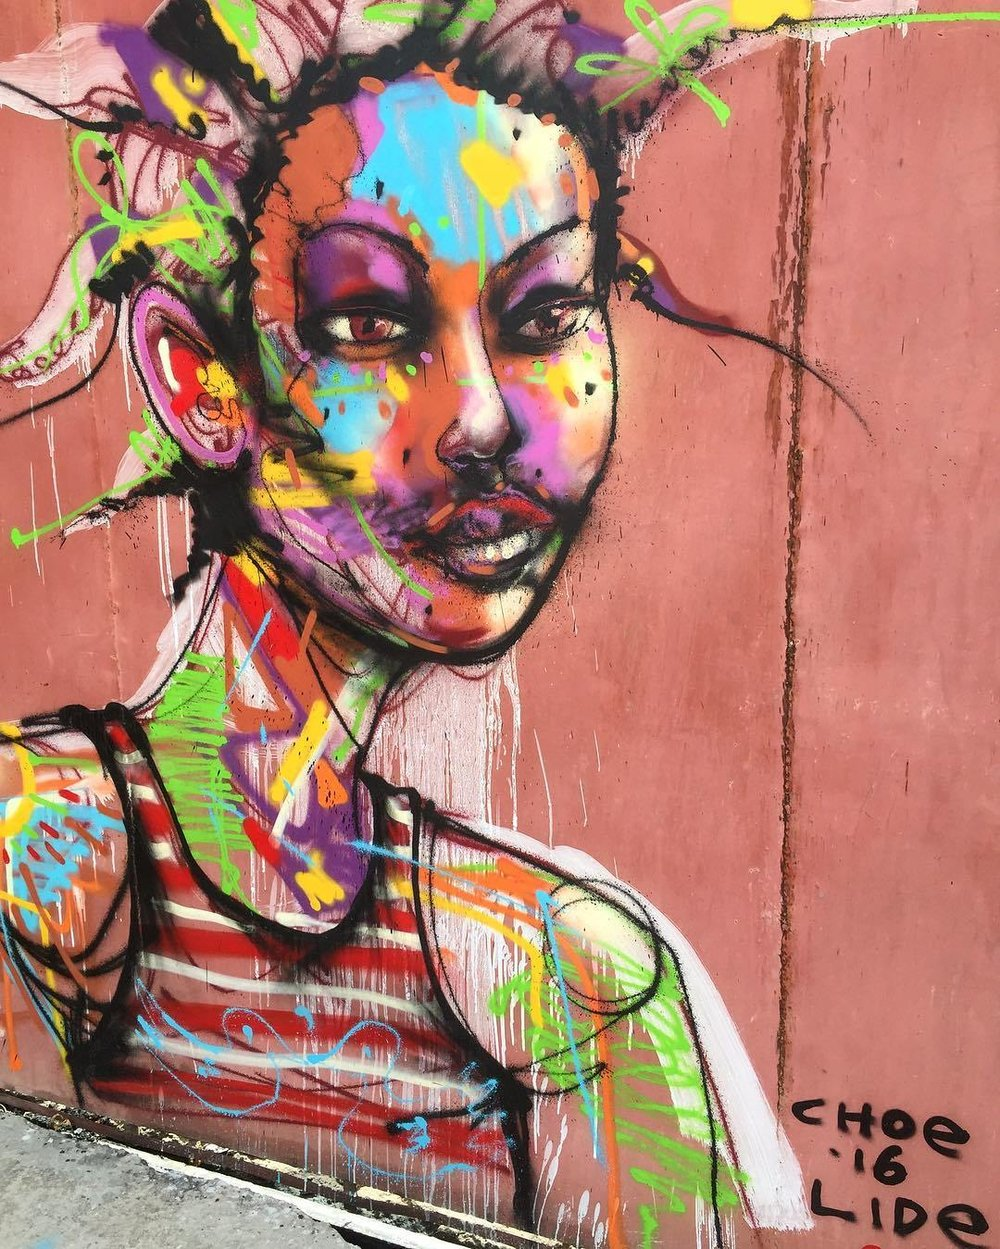 David Choe mural produced with the Lide Foundation in Haiti in 2016.